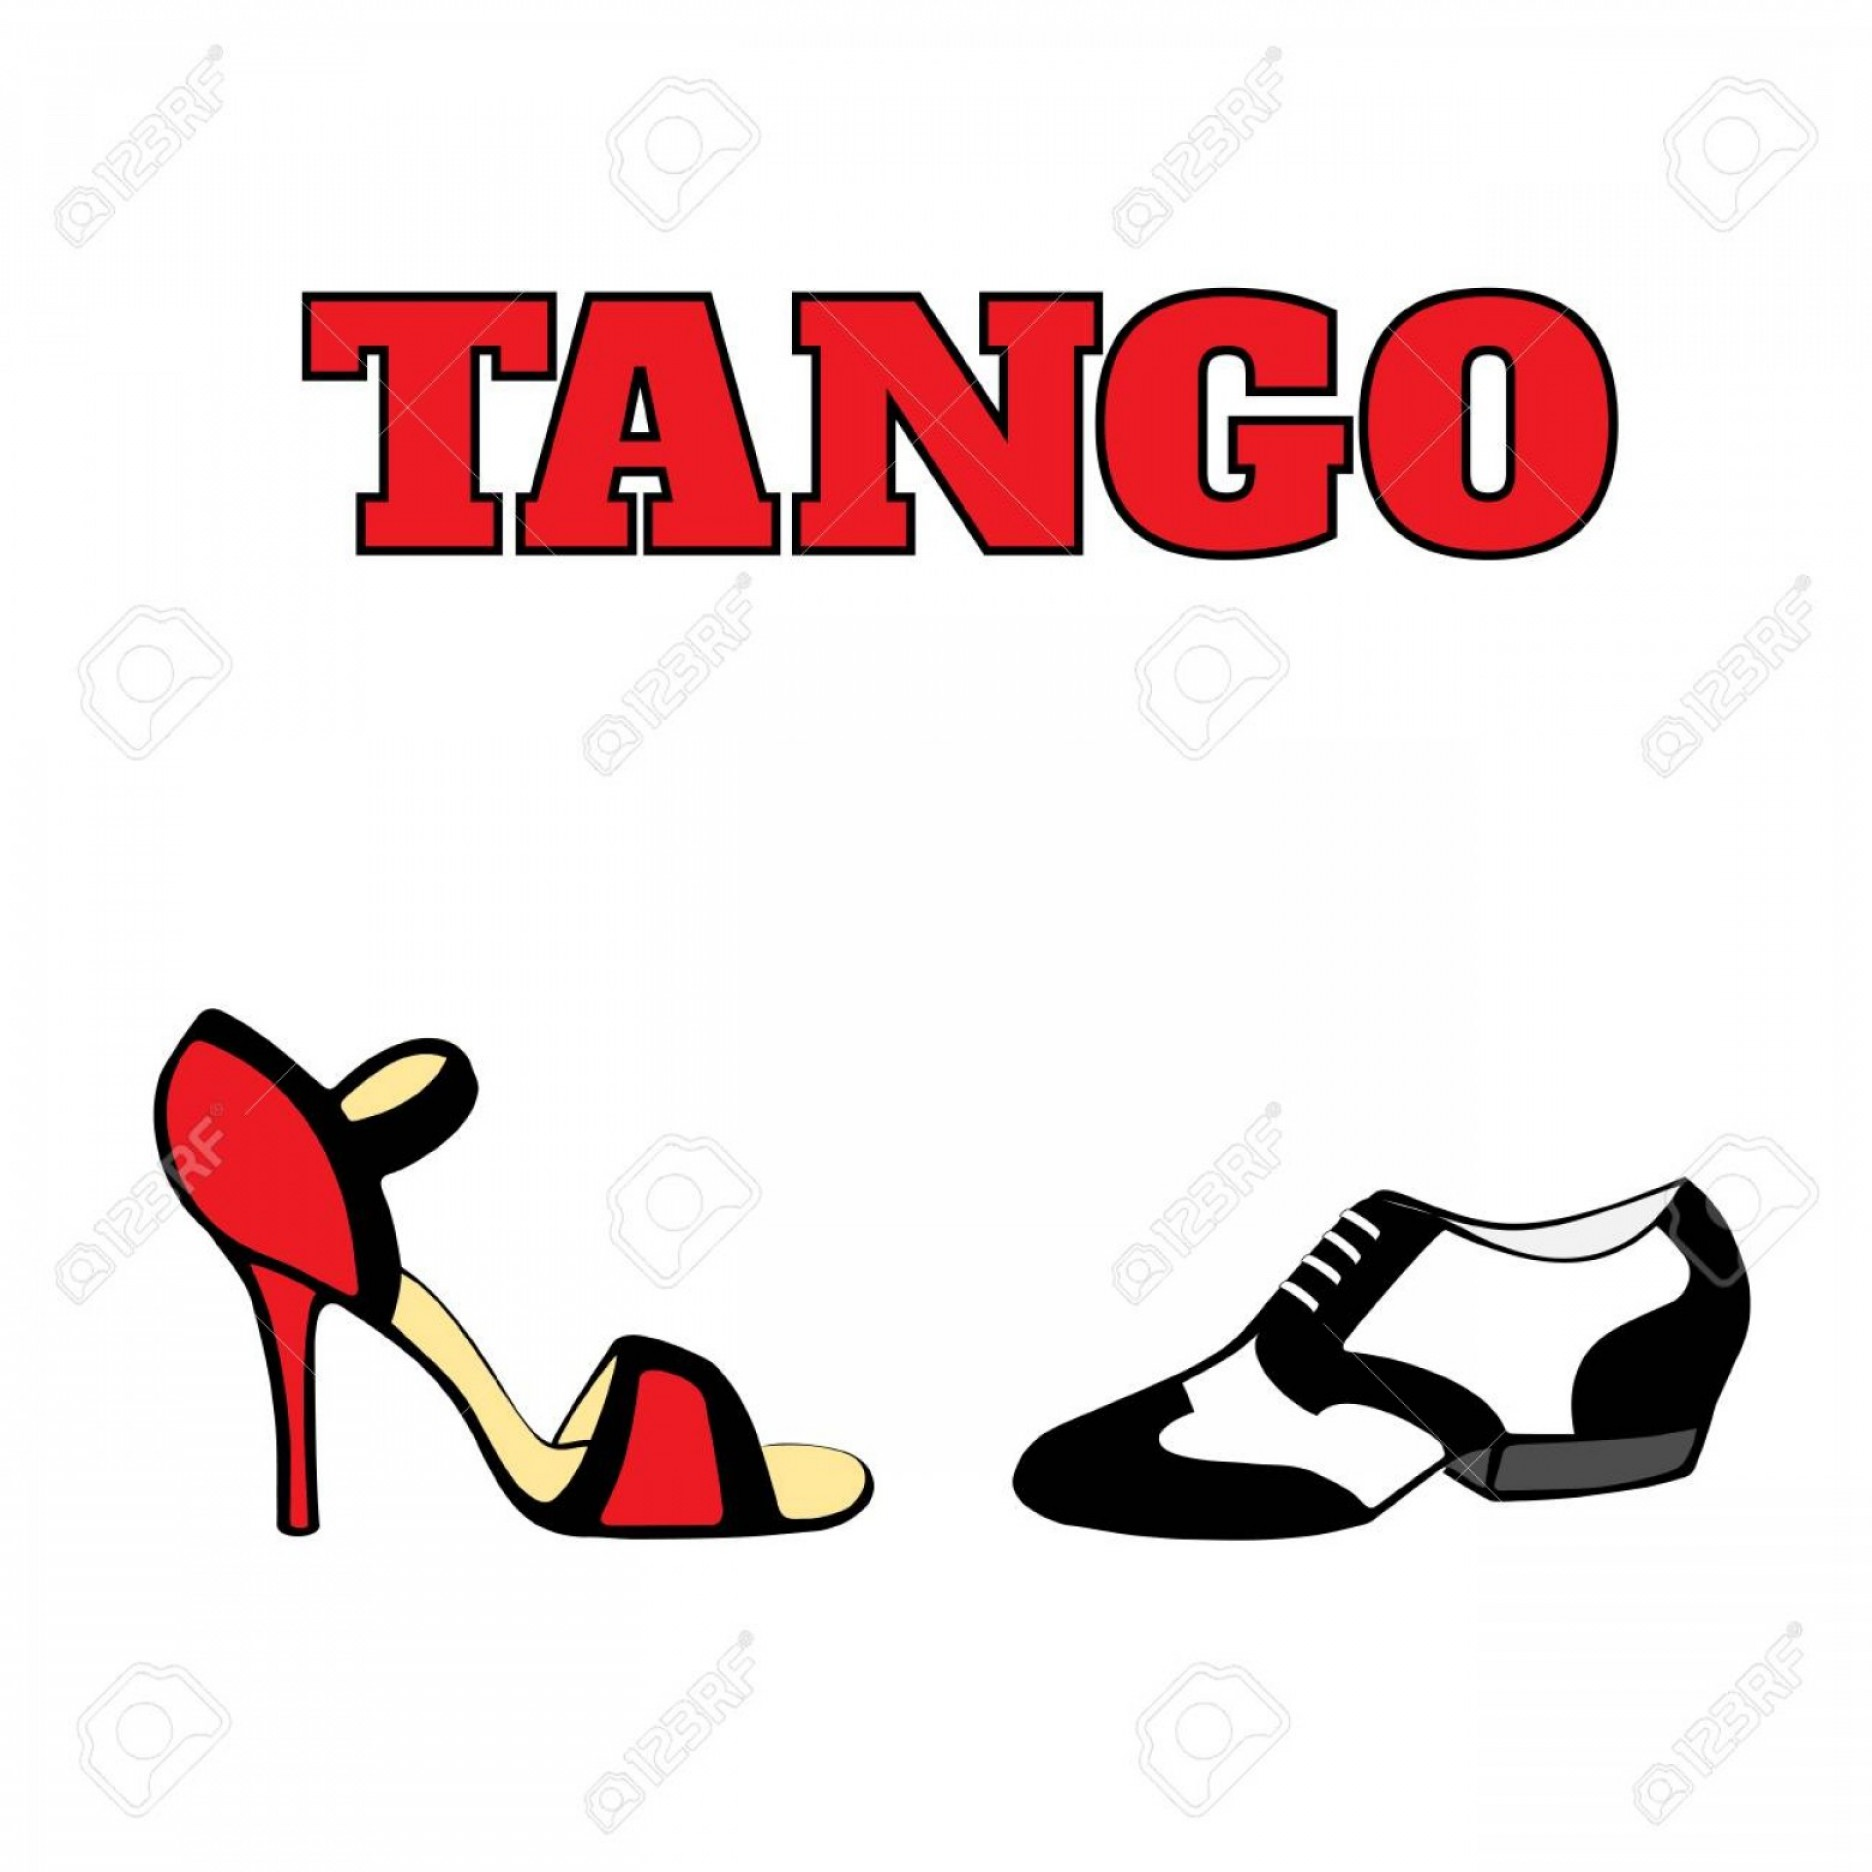 Vector Dancing Shoes: Artistic Photostock Vector Vector Argentine Tango Dancing Shoes Poster Men Shoe In Black And White S Style Women Shoe High He